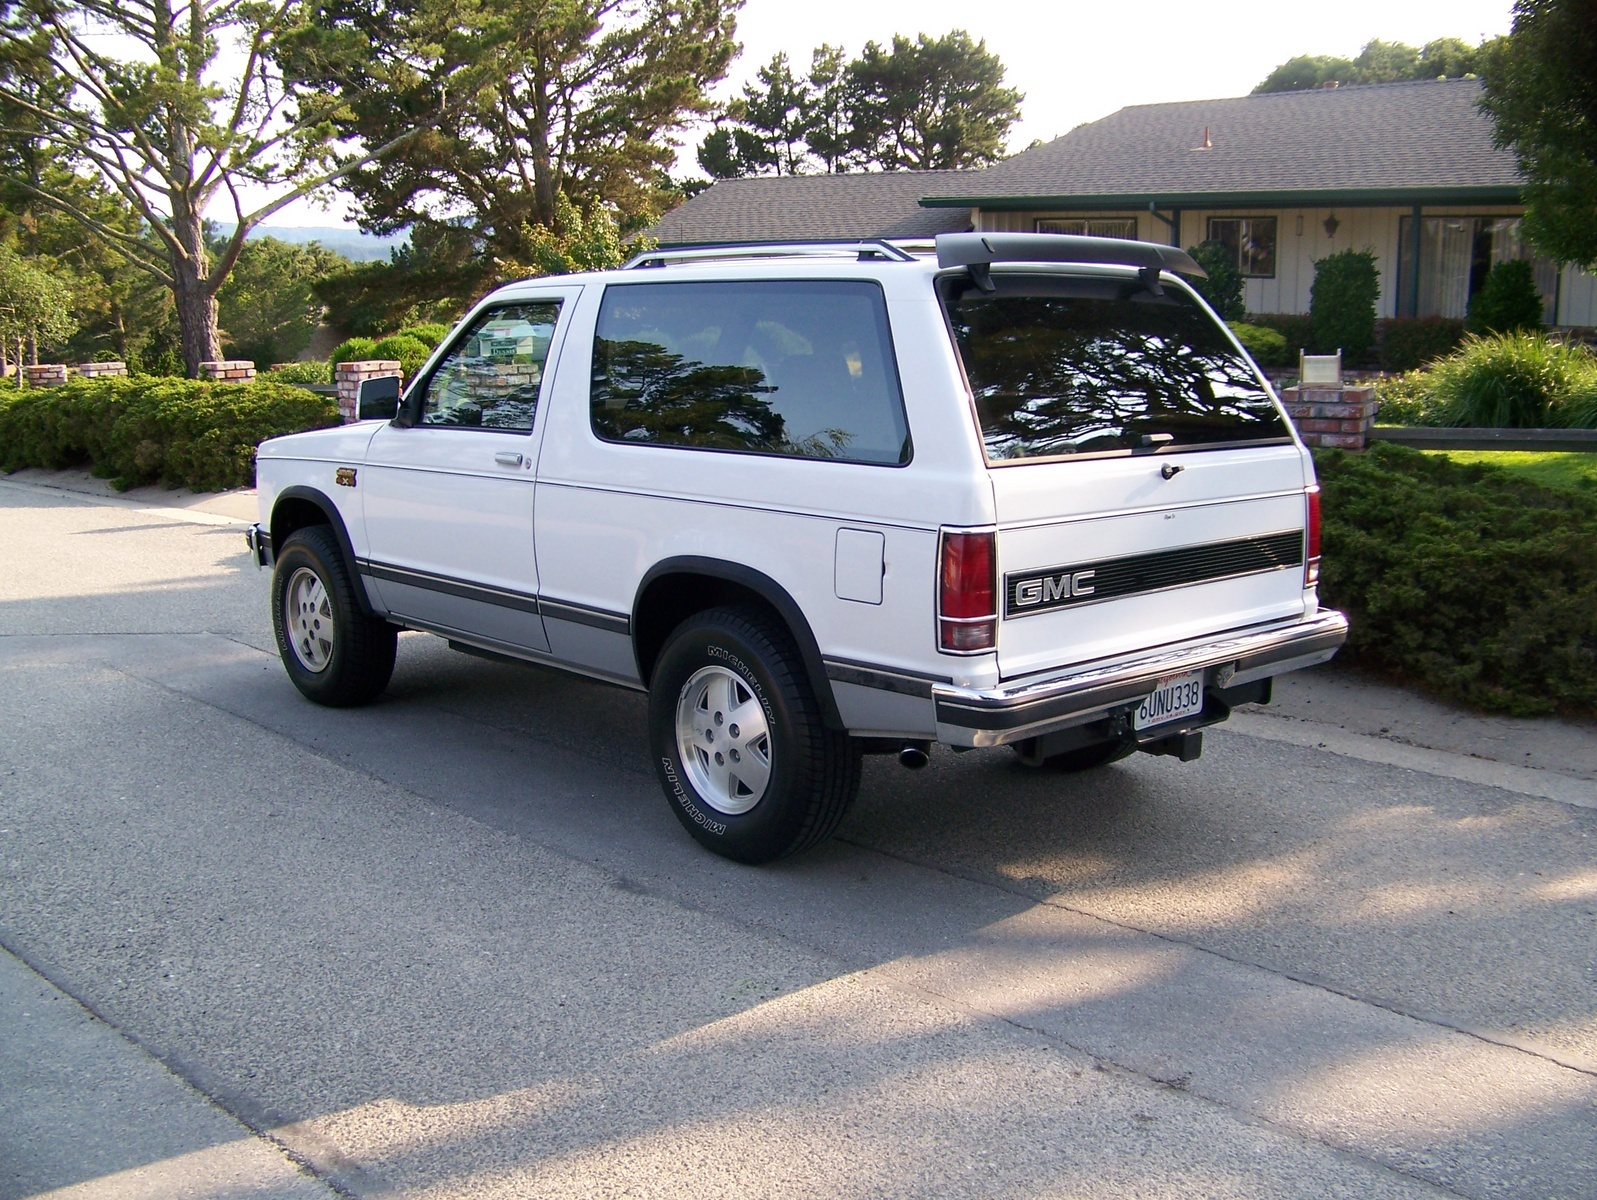 1990 GMC S-15 Jimmy #20